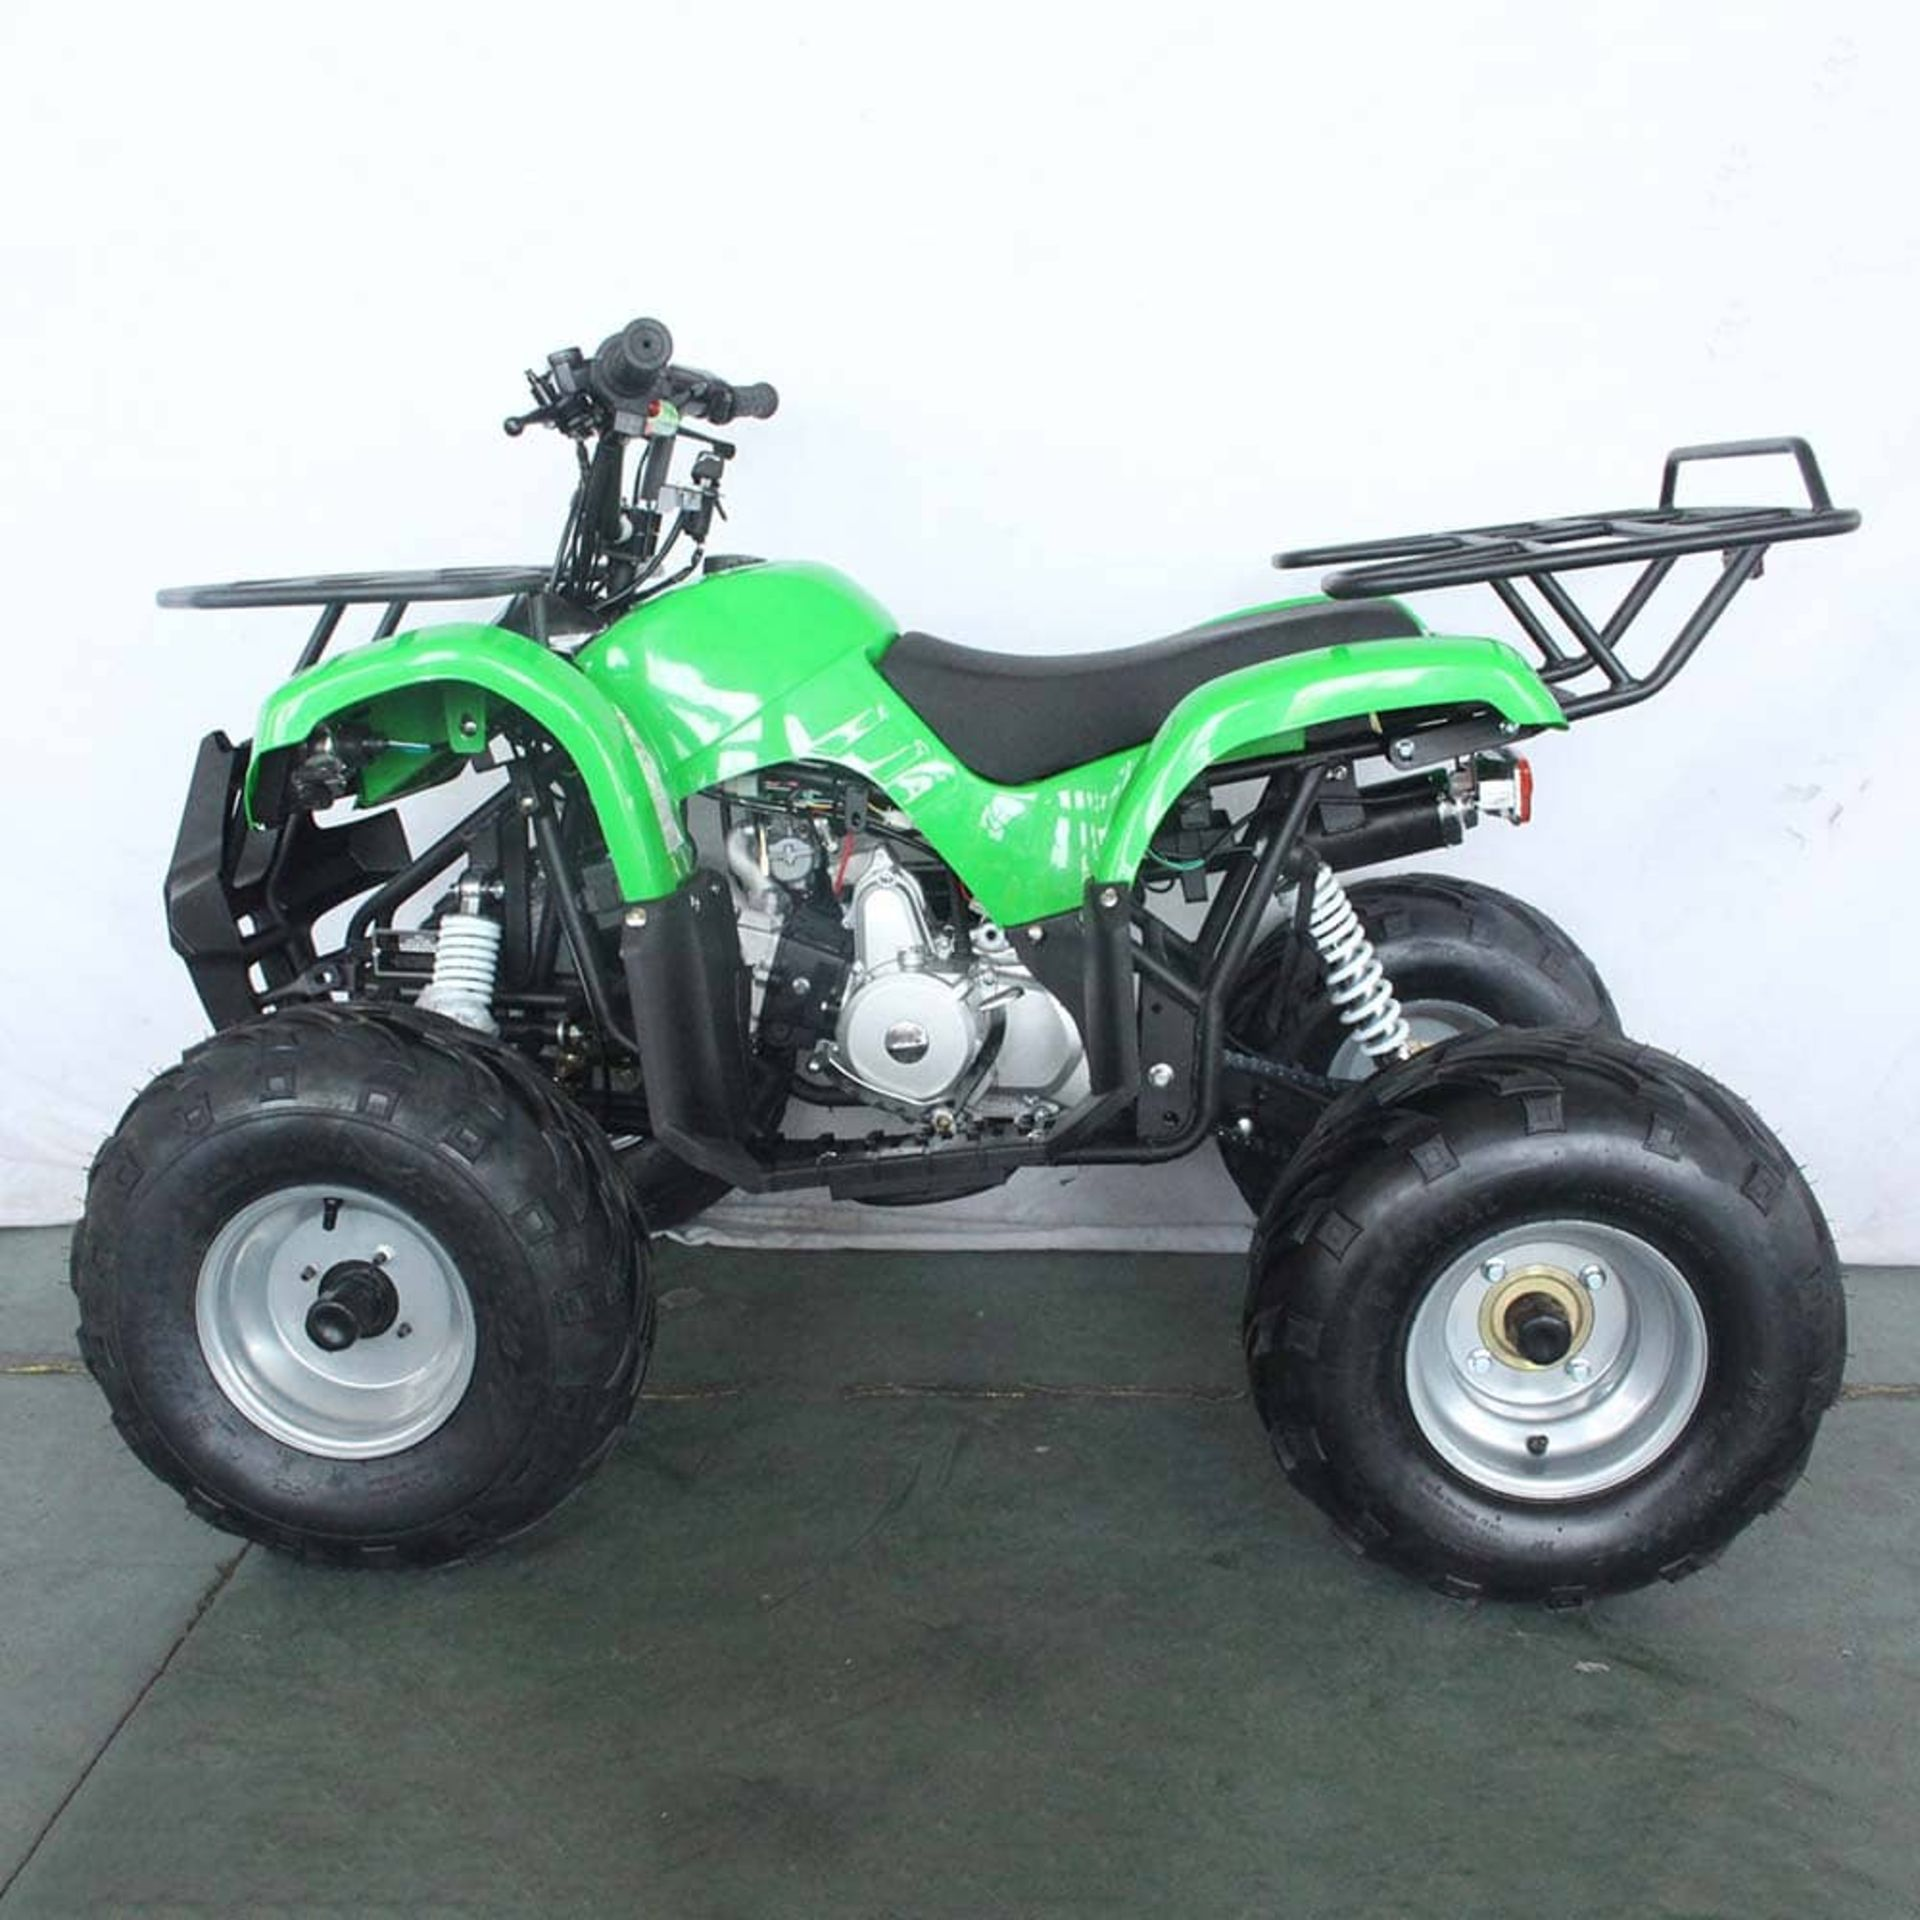 + VAT Brand New 125cc Condor Quad Bike - Four Stroke - Single Cylinder - Front Drum Brakes & Rear - Image 3 of 9